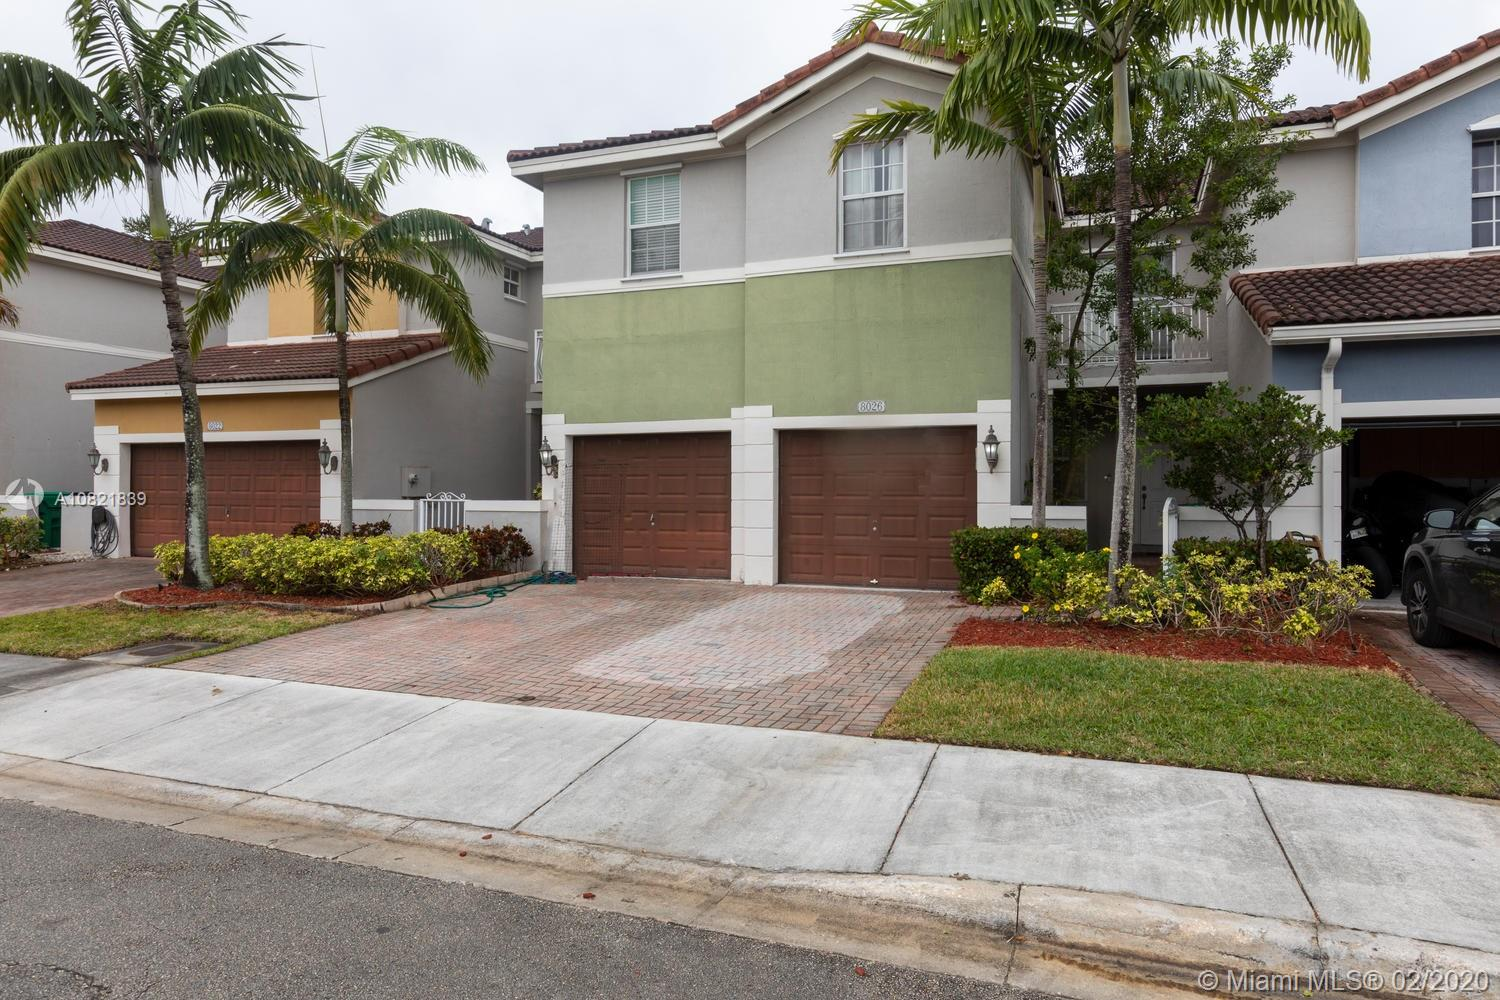 8026 NW 116th Ave, Doral, FL 33178